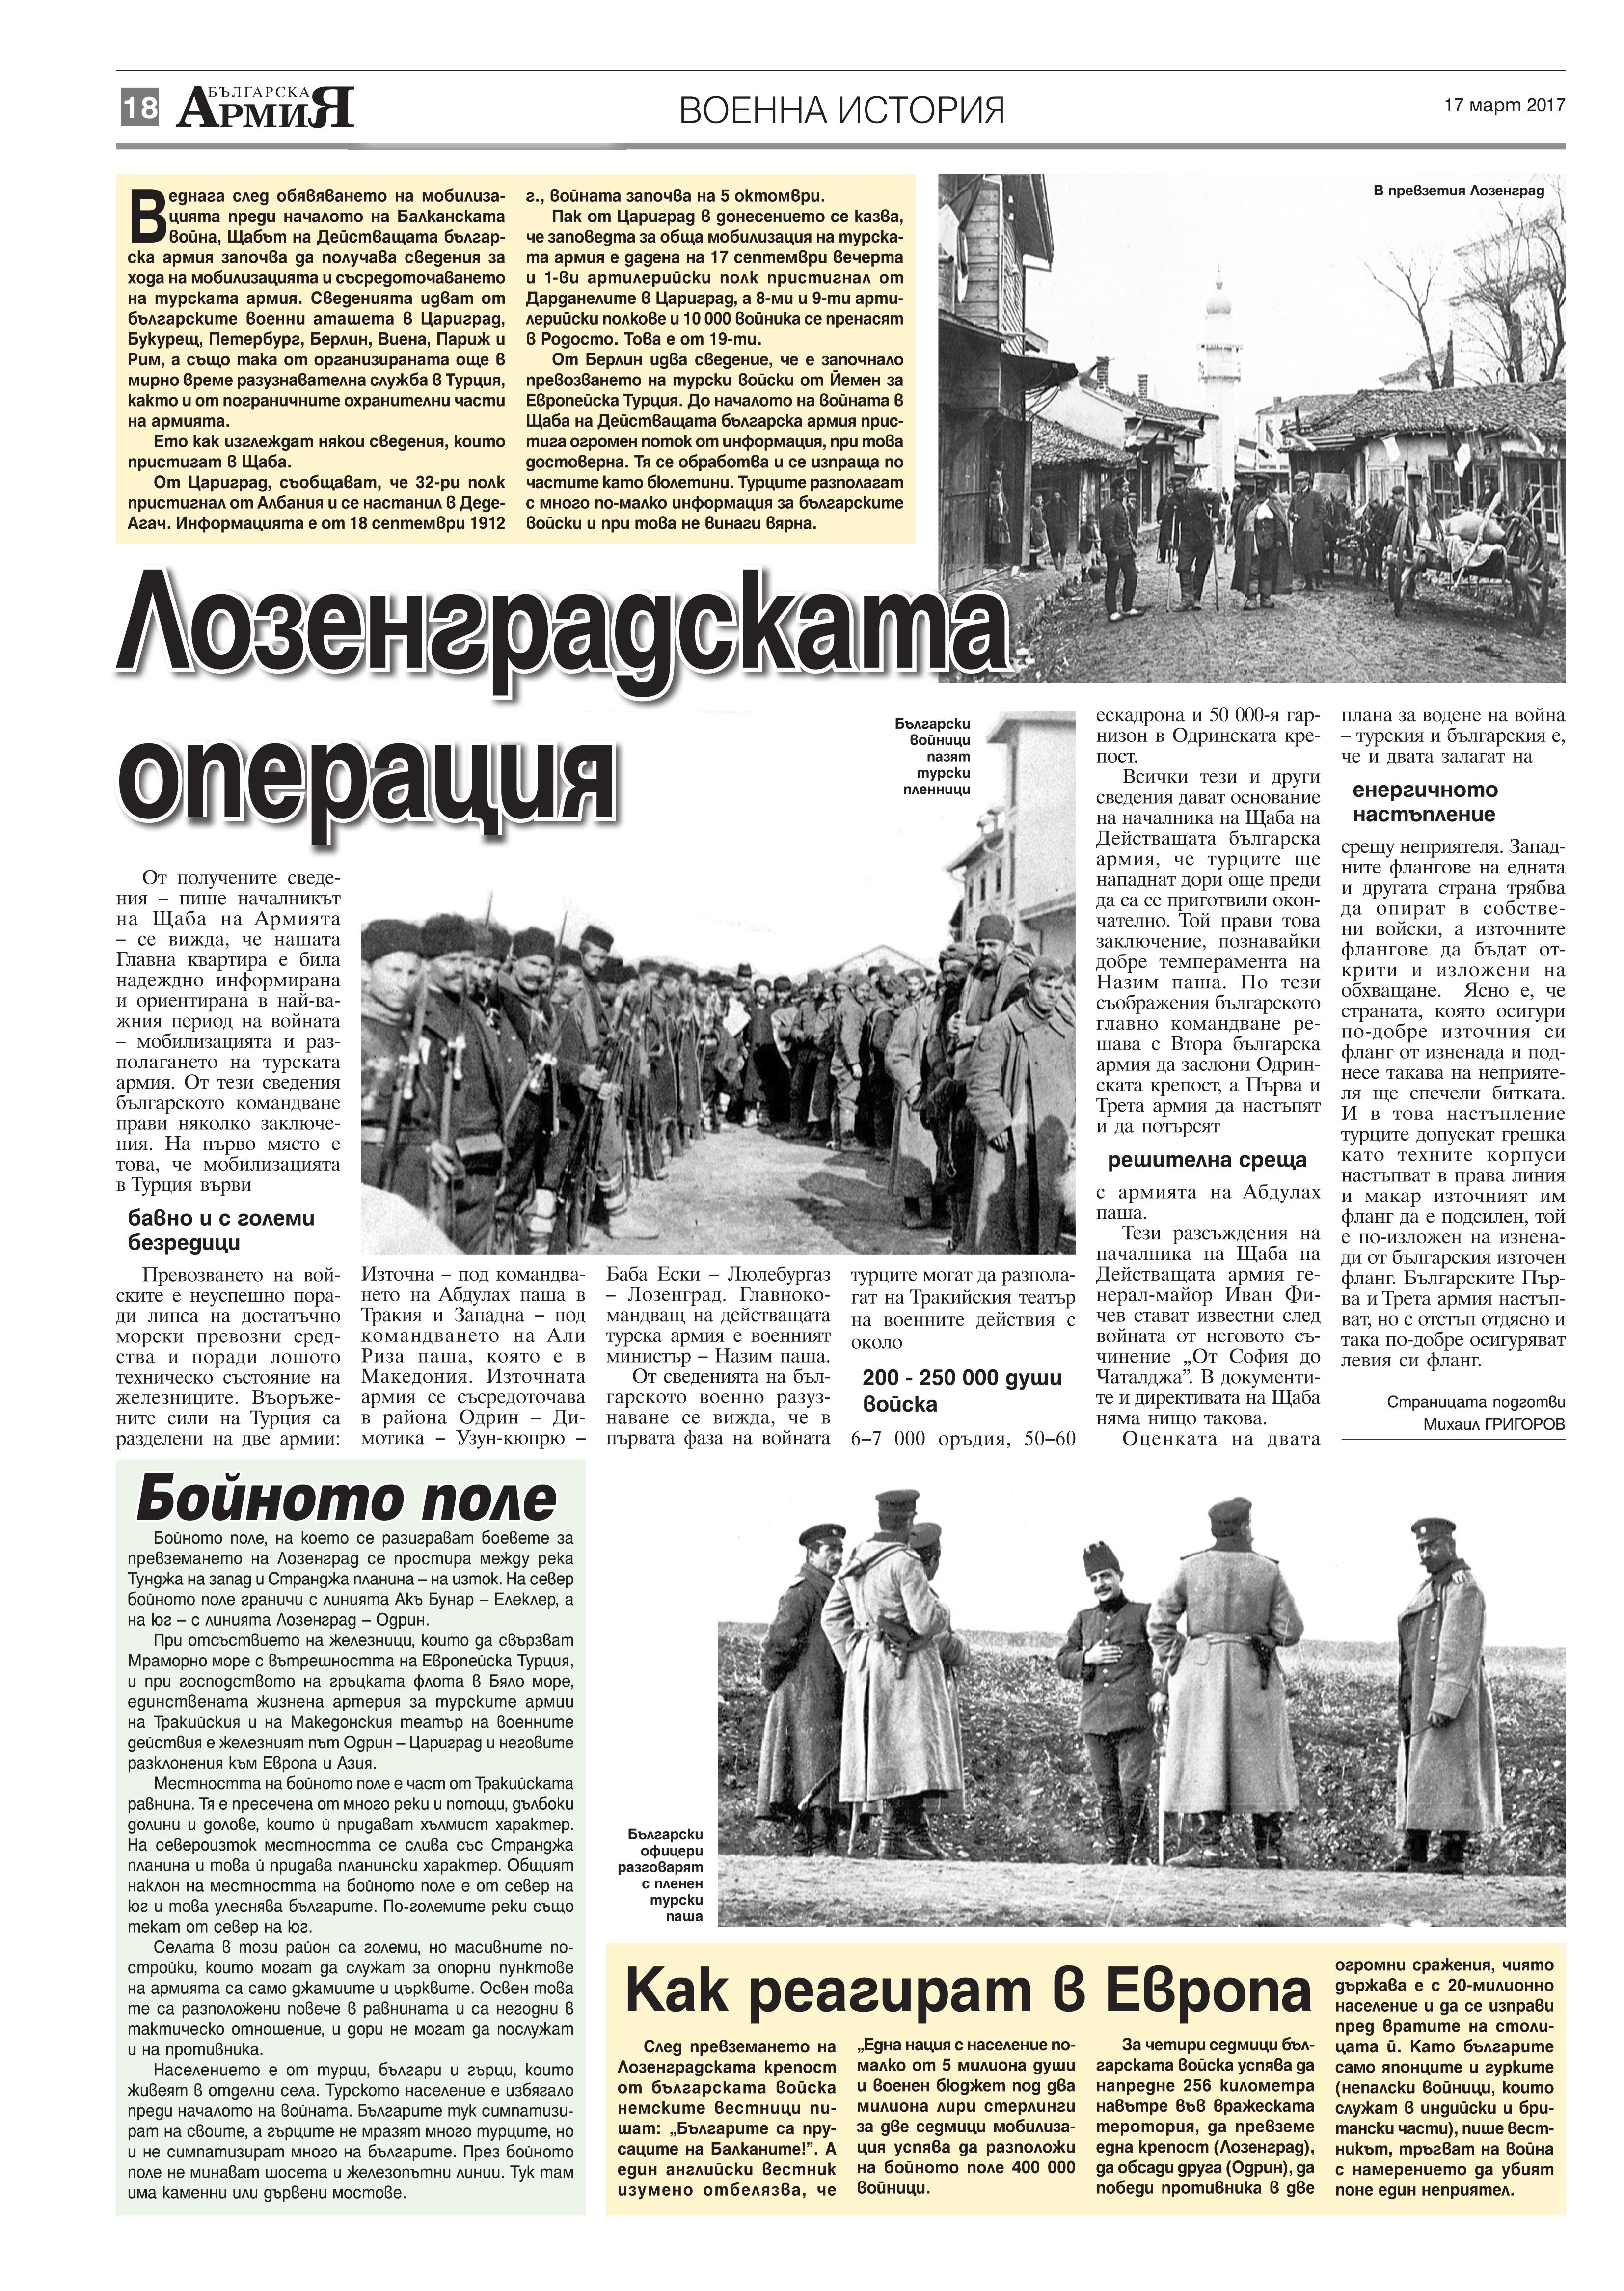 https://www.armymedia.bg/wp-content/uploads/2015/06/18.page1_-17.jpg